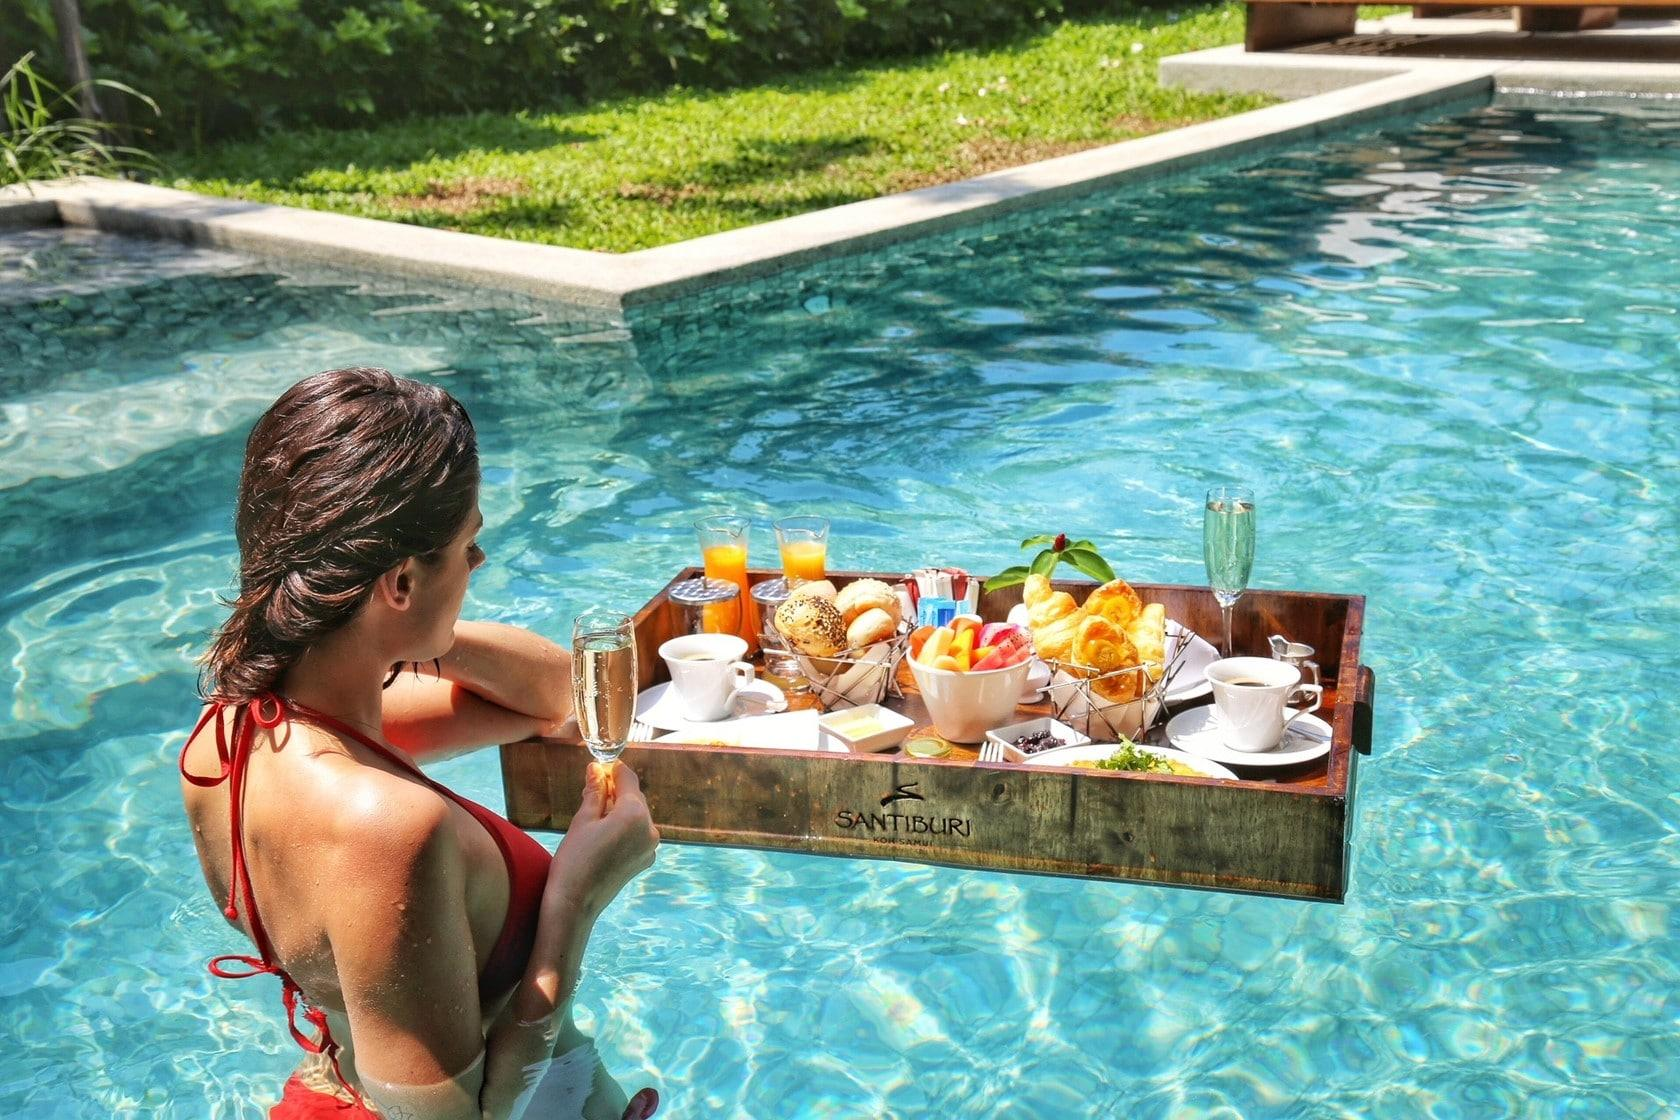 Santiburi Koh Samui 'launches' a floating breakfast | The Thaiger